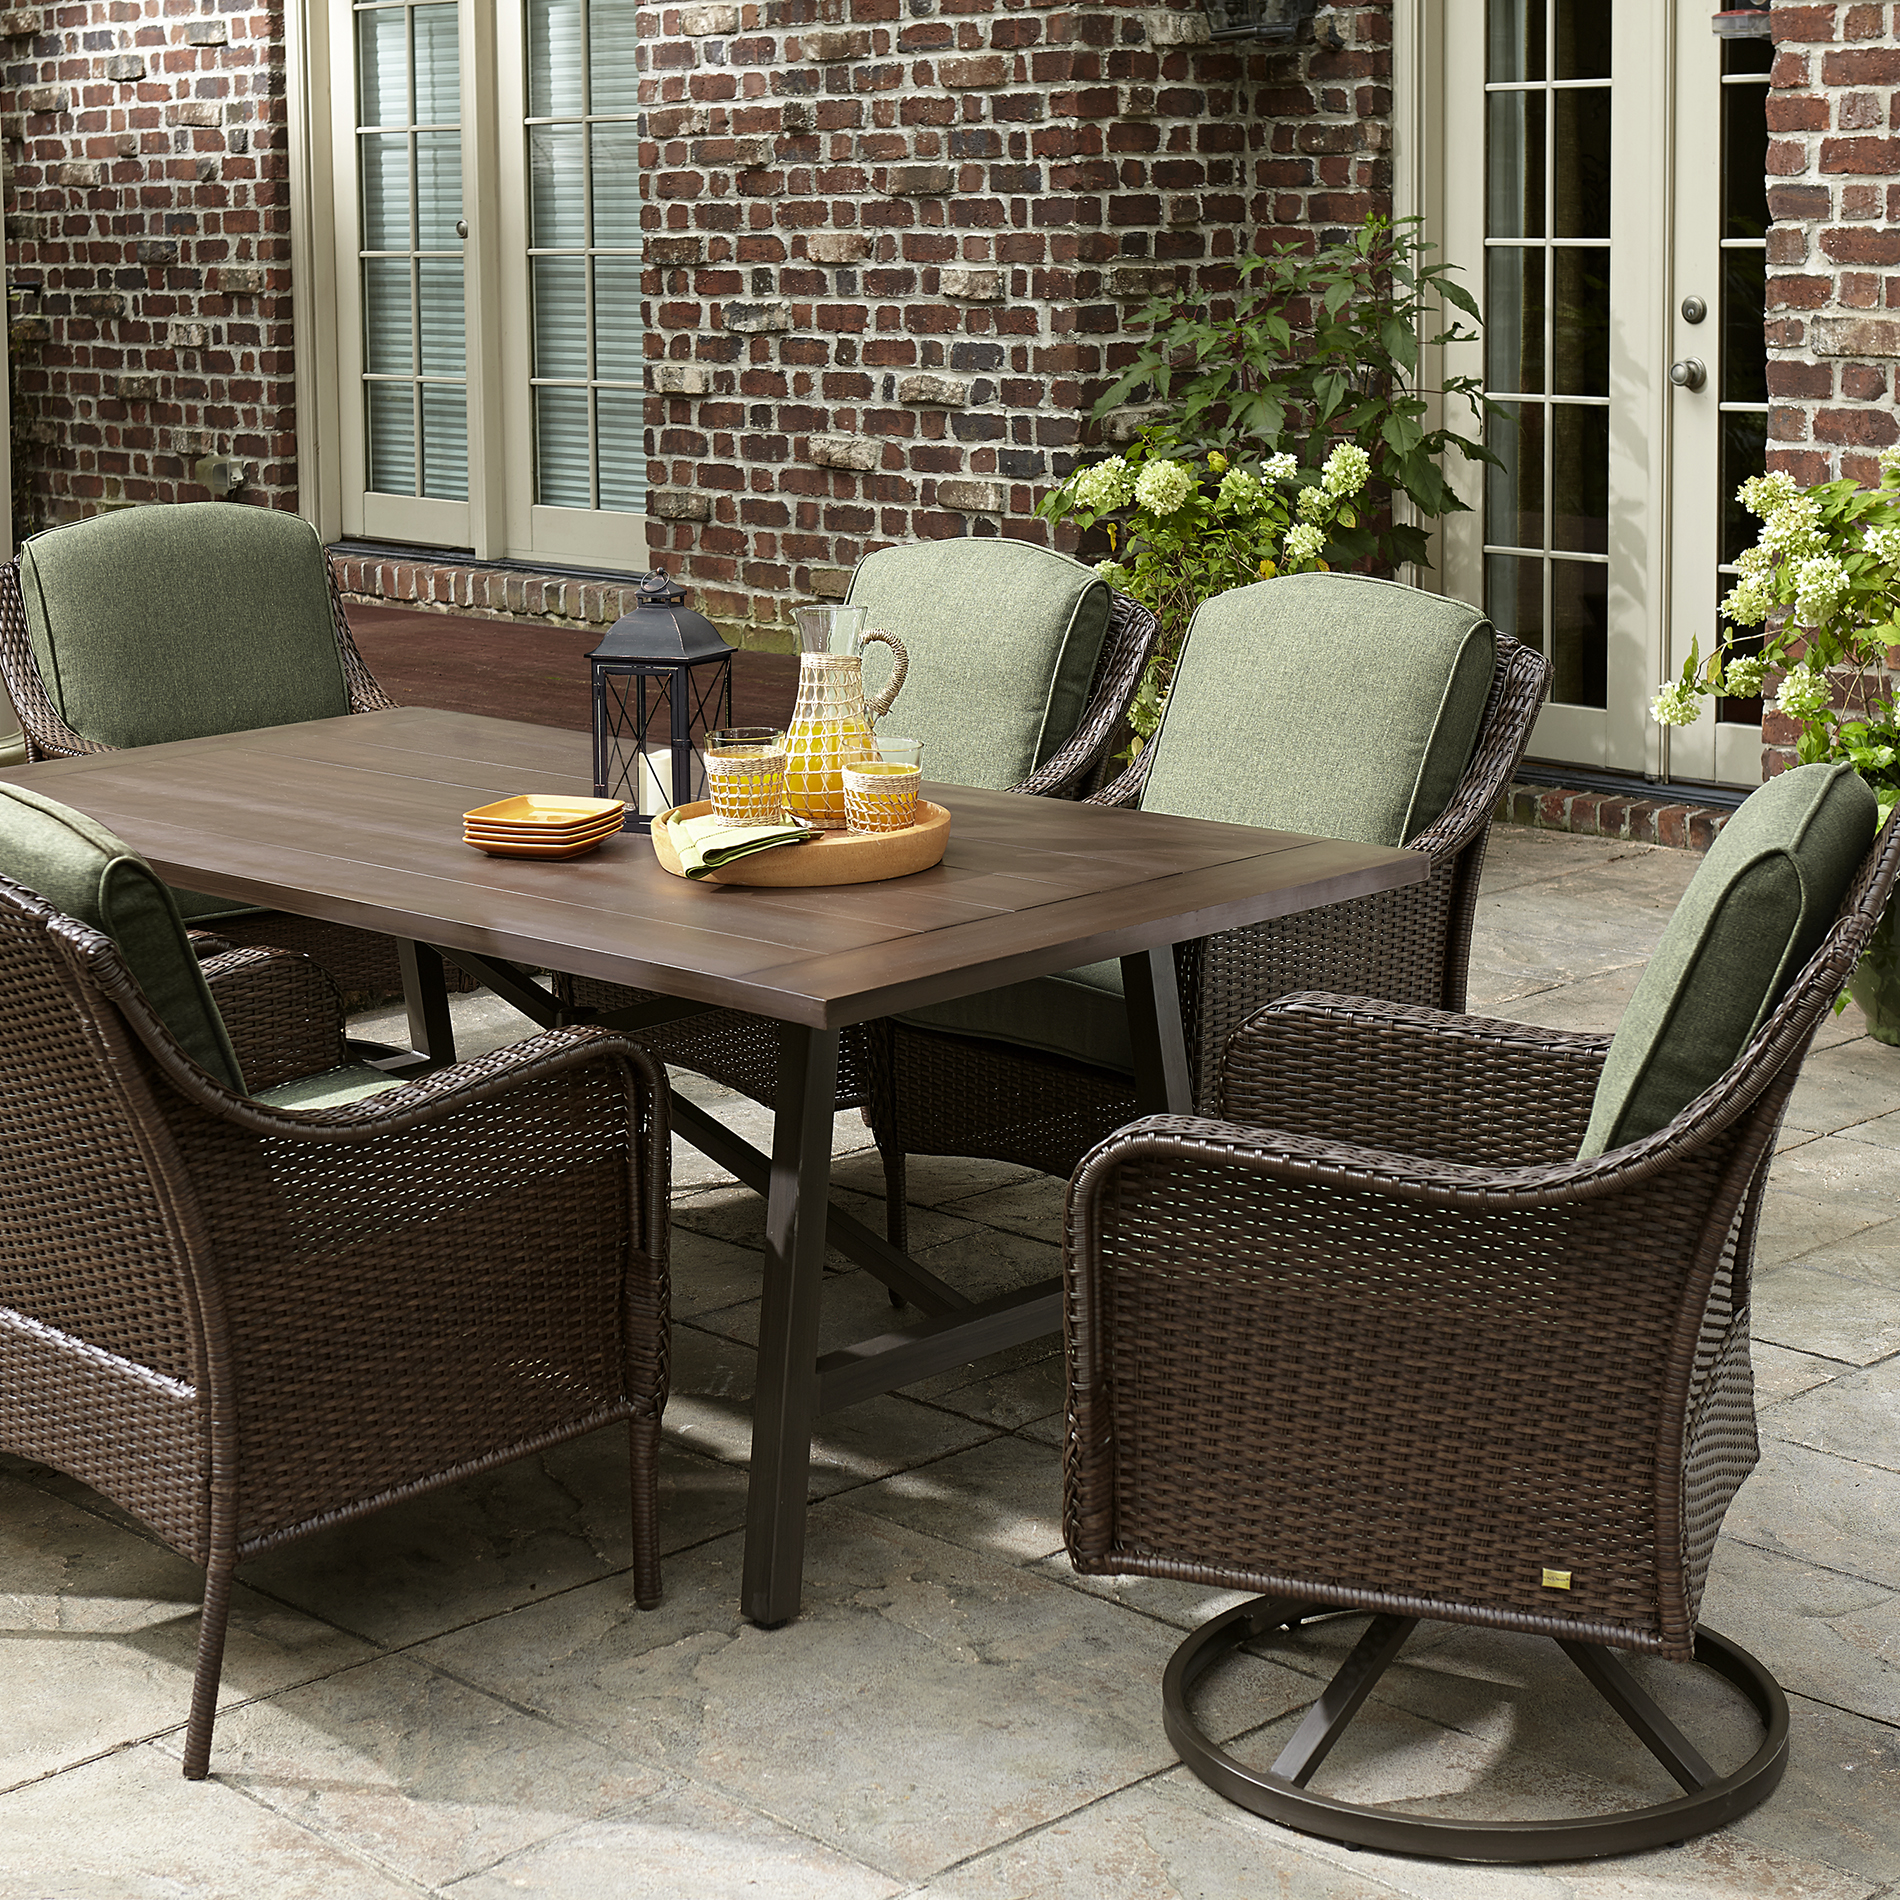 La-boy Outdoor Madeline 7 Piece Dining Set- Green